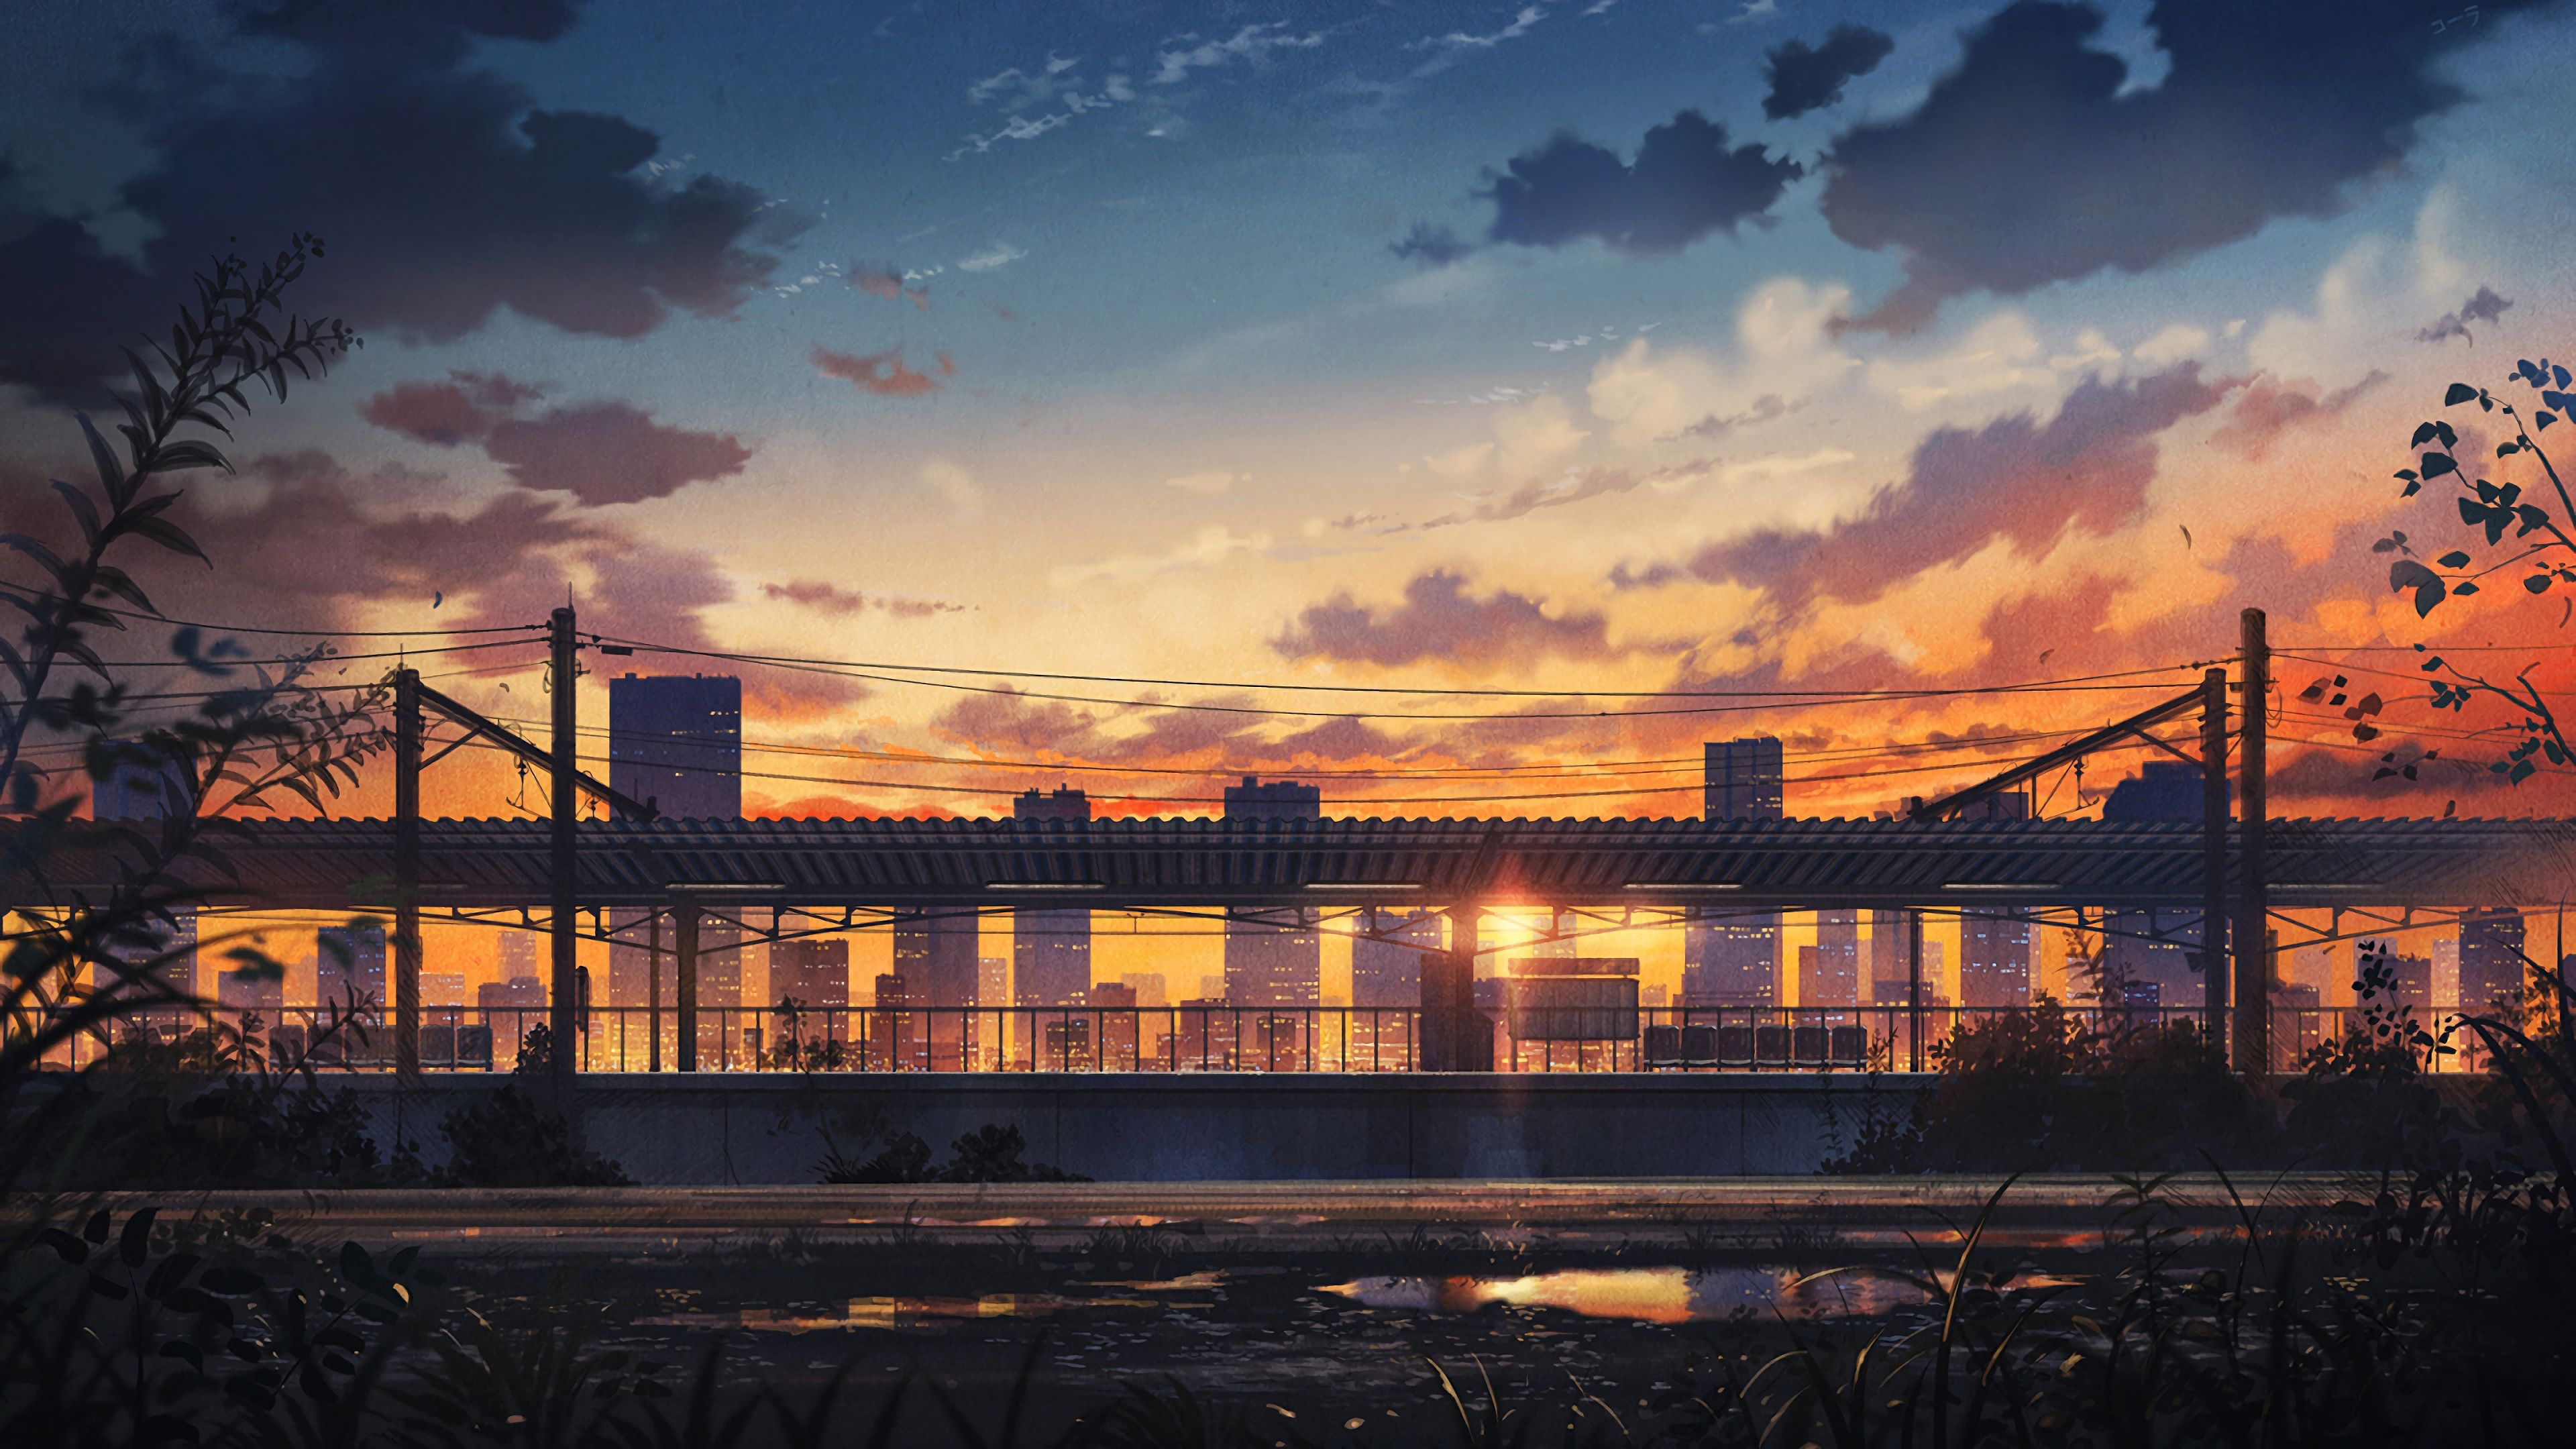 Sunset City Anime Wallpapers - Wallpaper Cave